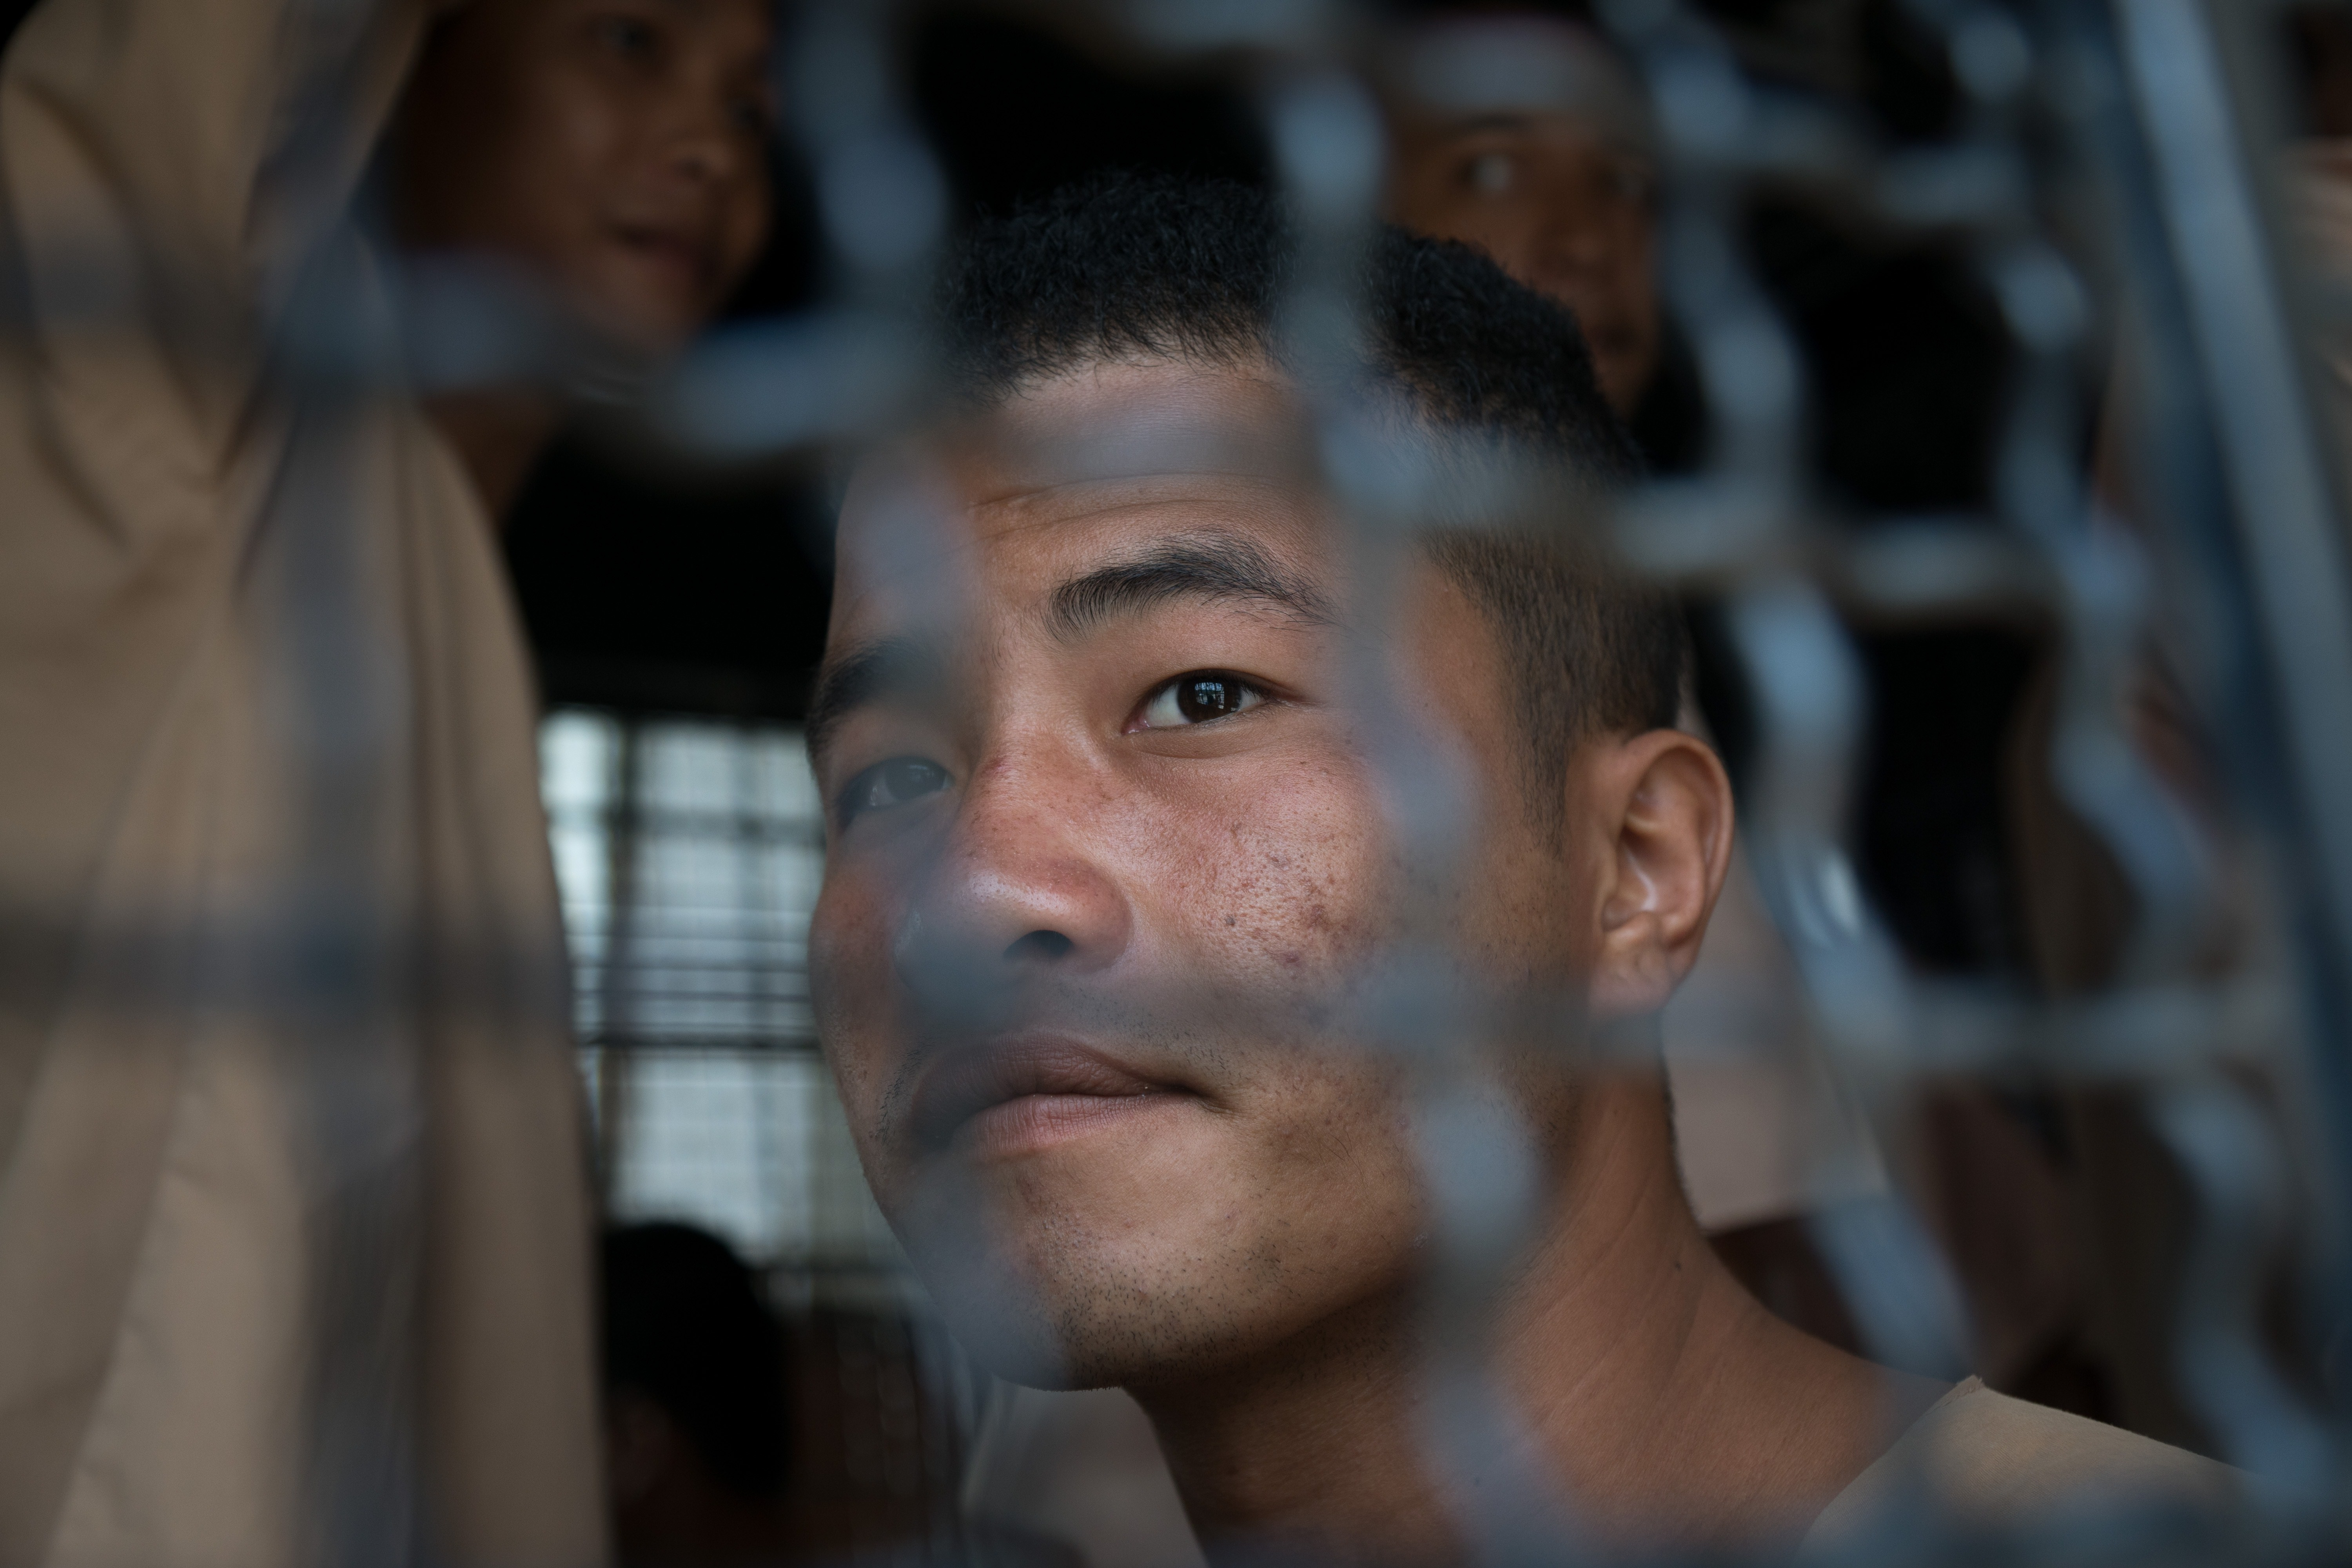 Myanmar national Zaw Lin looks on as he arrives in a prison transport van outside Koh Samui court on the Thai resort island of Koh Samui on July 9, 2015